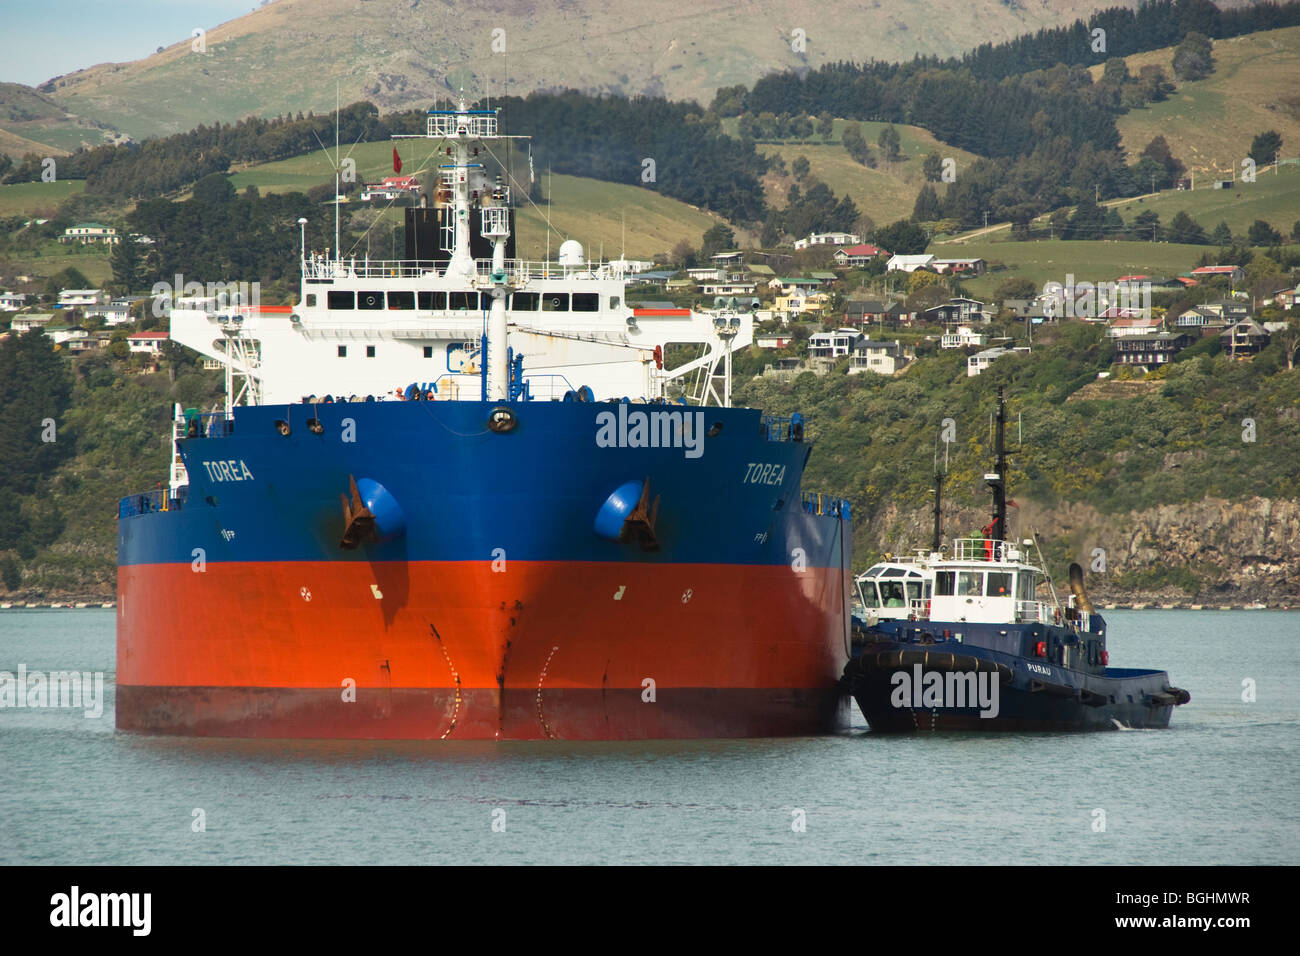 A tanker is assisted into port by  tugs. - Stock Image